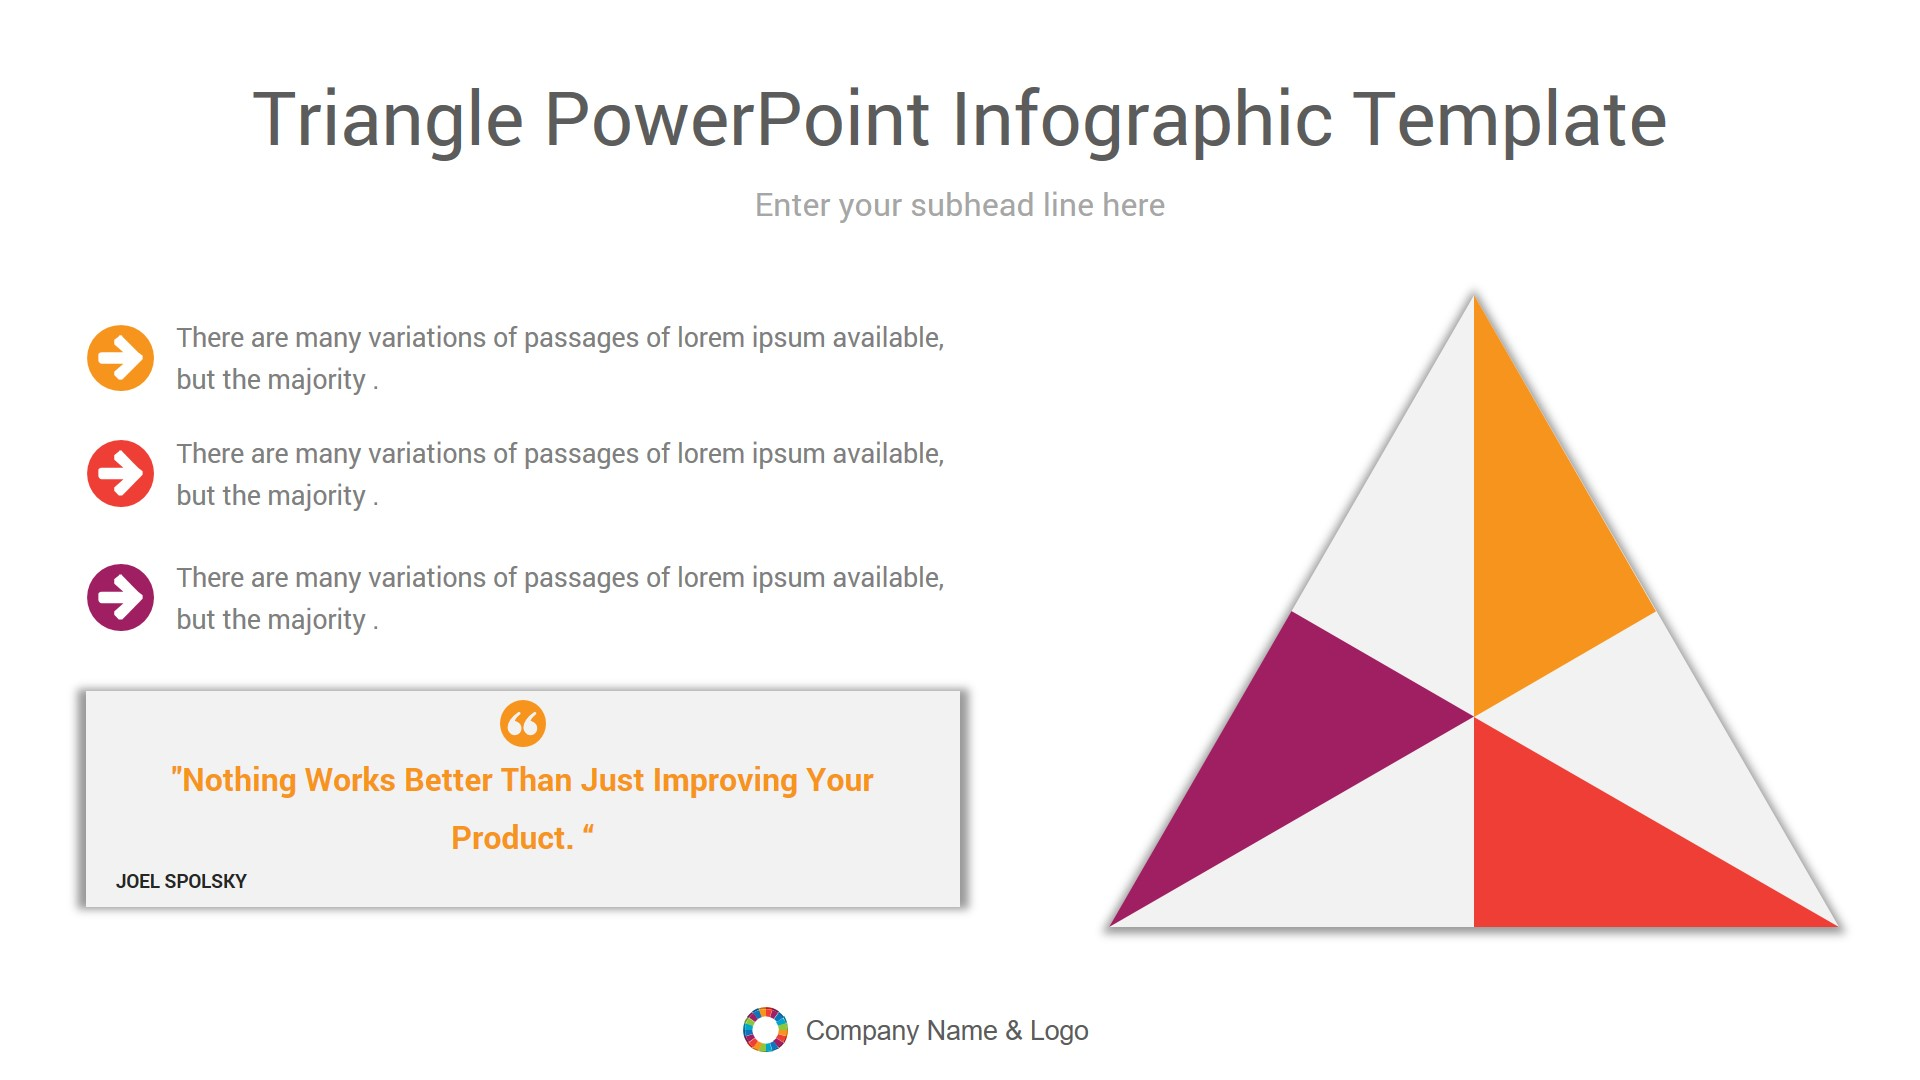 triangle powerpoint Infographic template